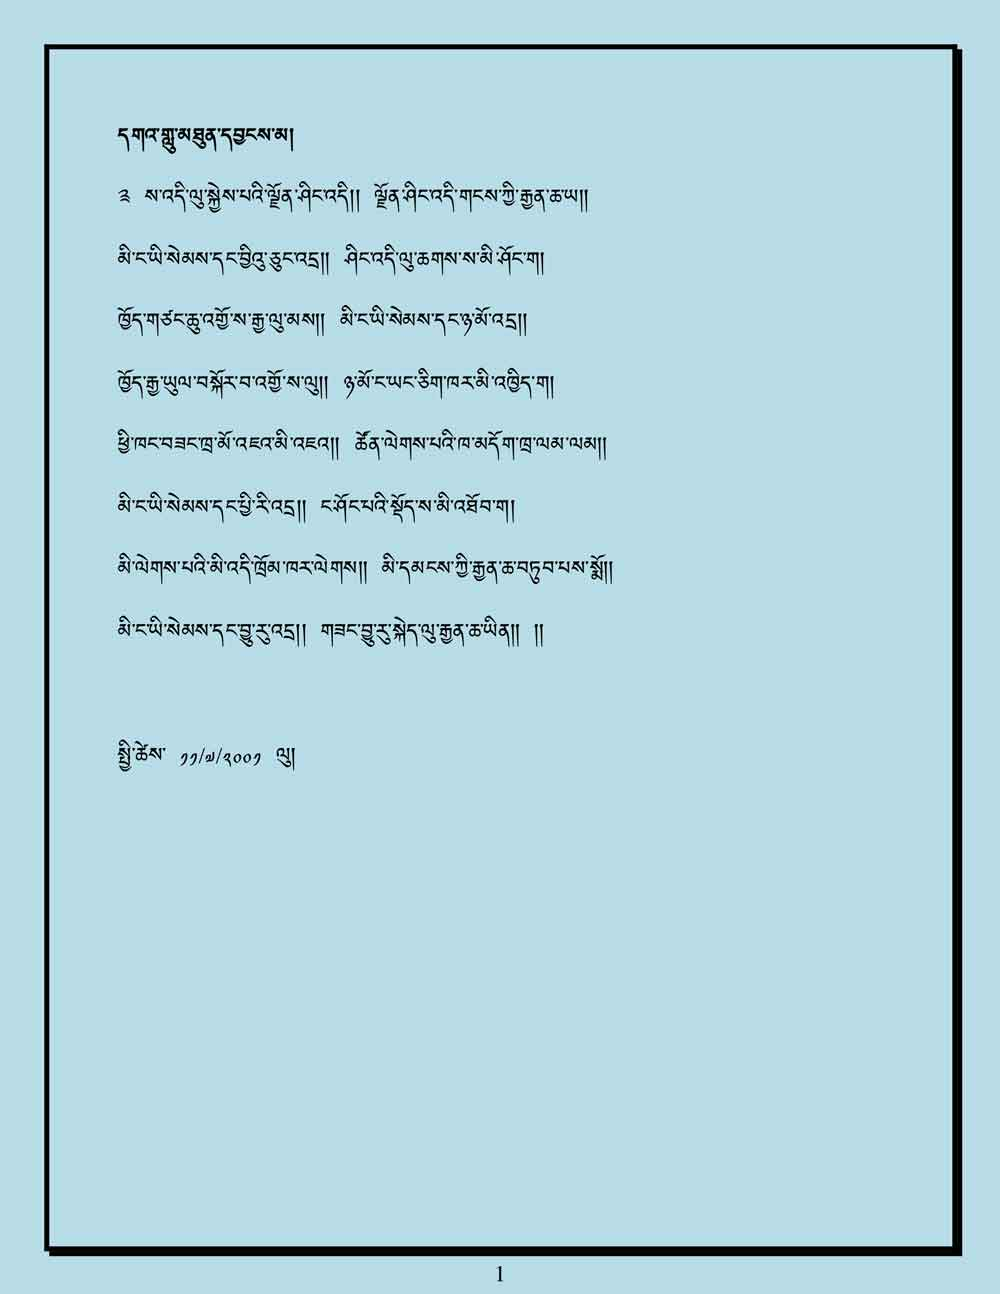 Ap-Gangkar-Lyrics-1.jpg